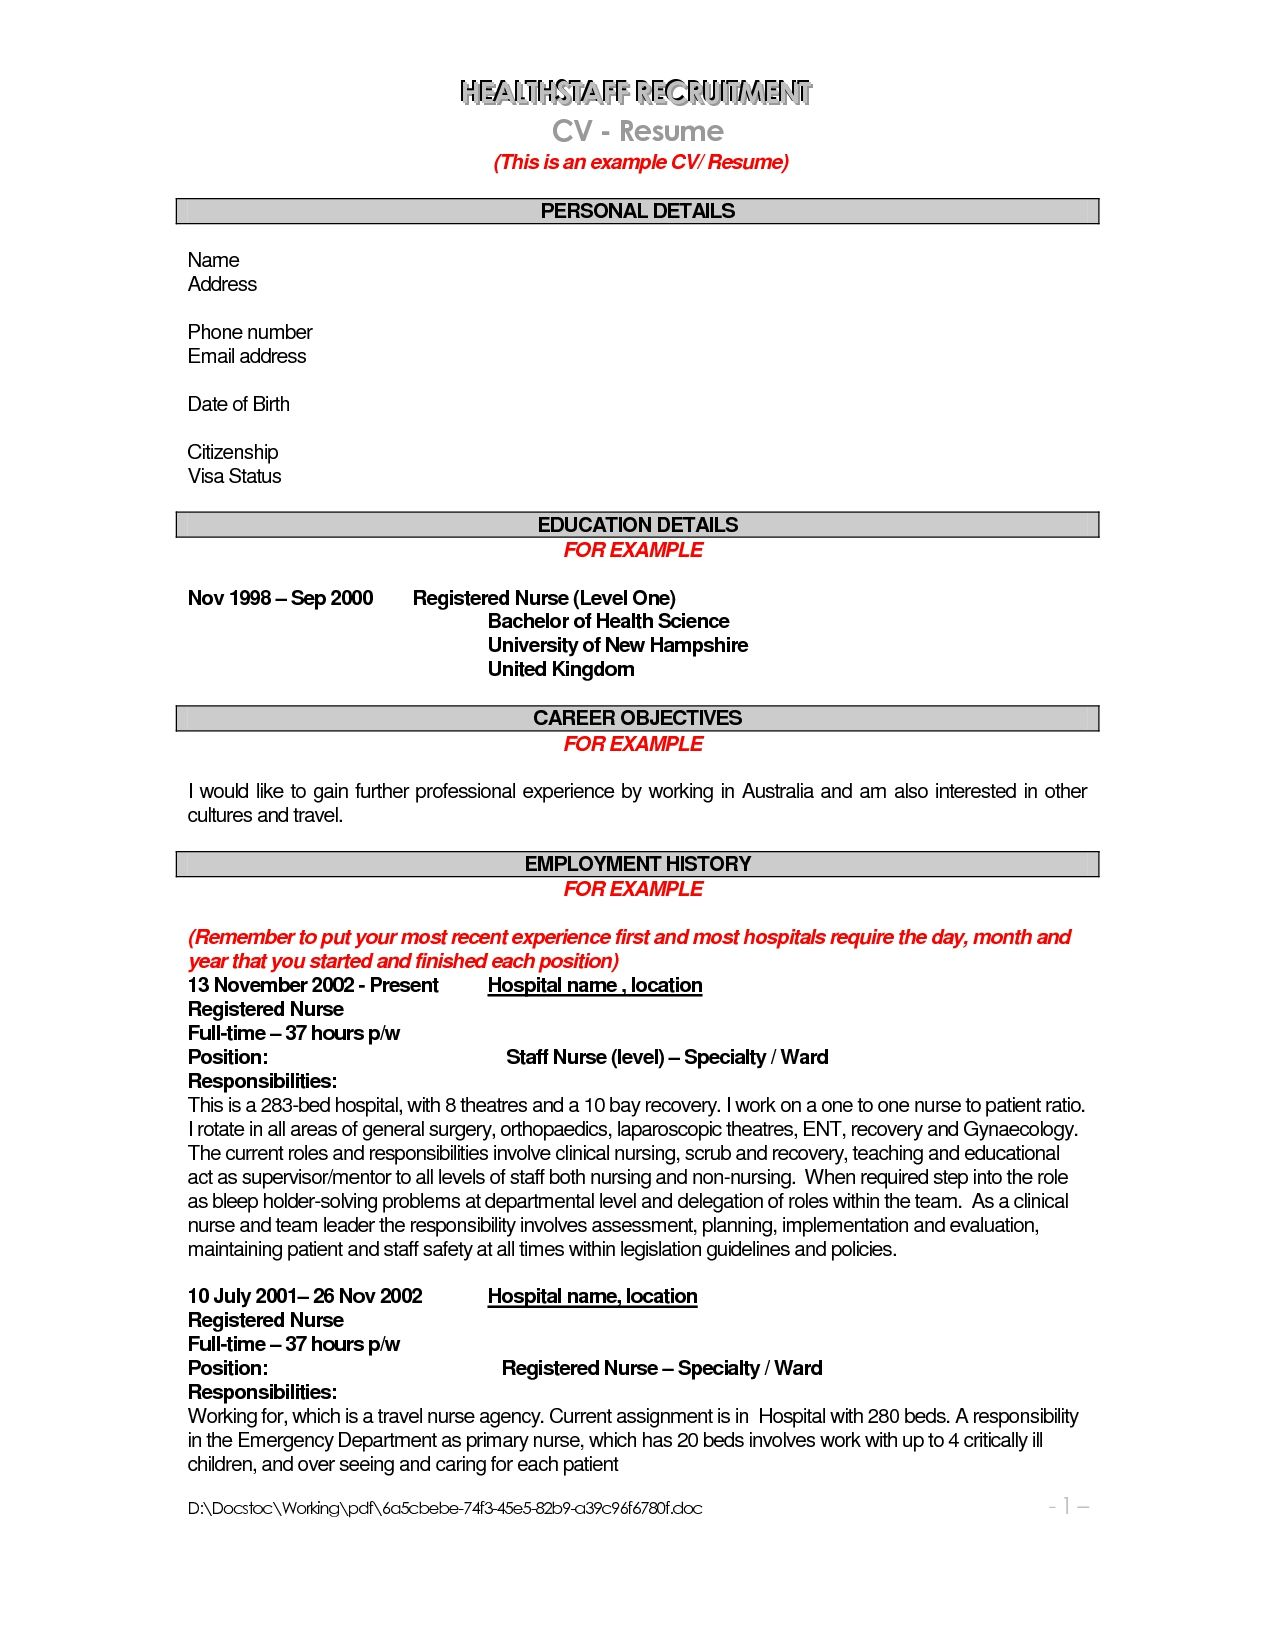 Example Of An Objective On A Resume Stunning Resume Job Description Cover Letter Template Sample Resumes .